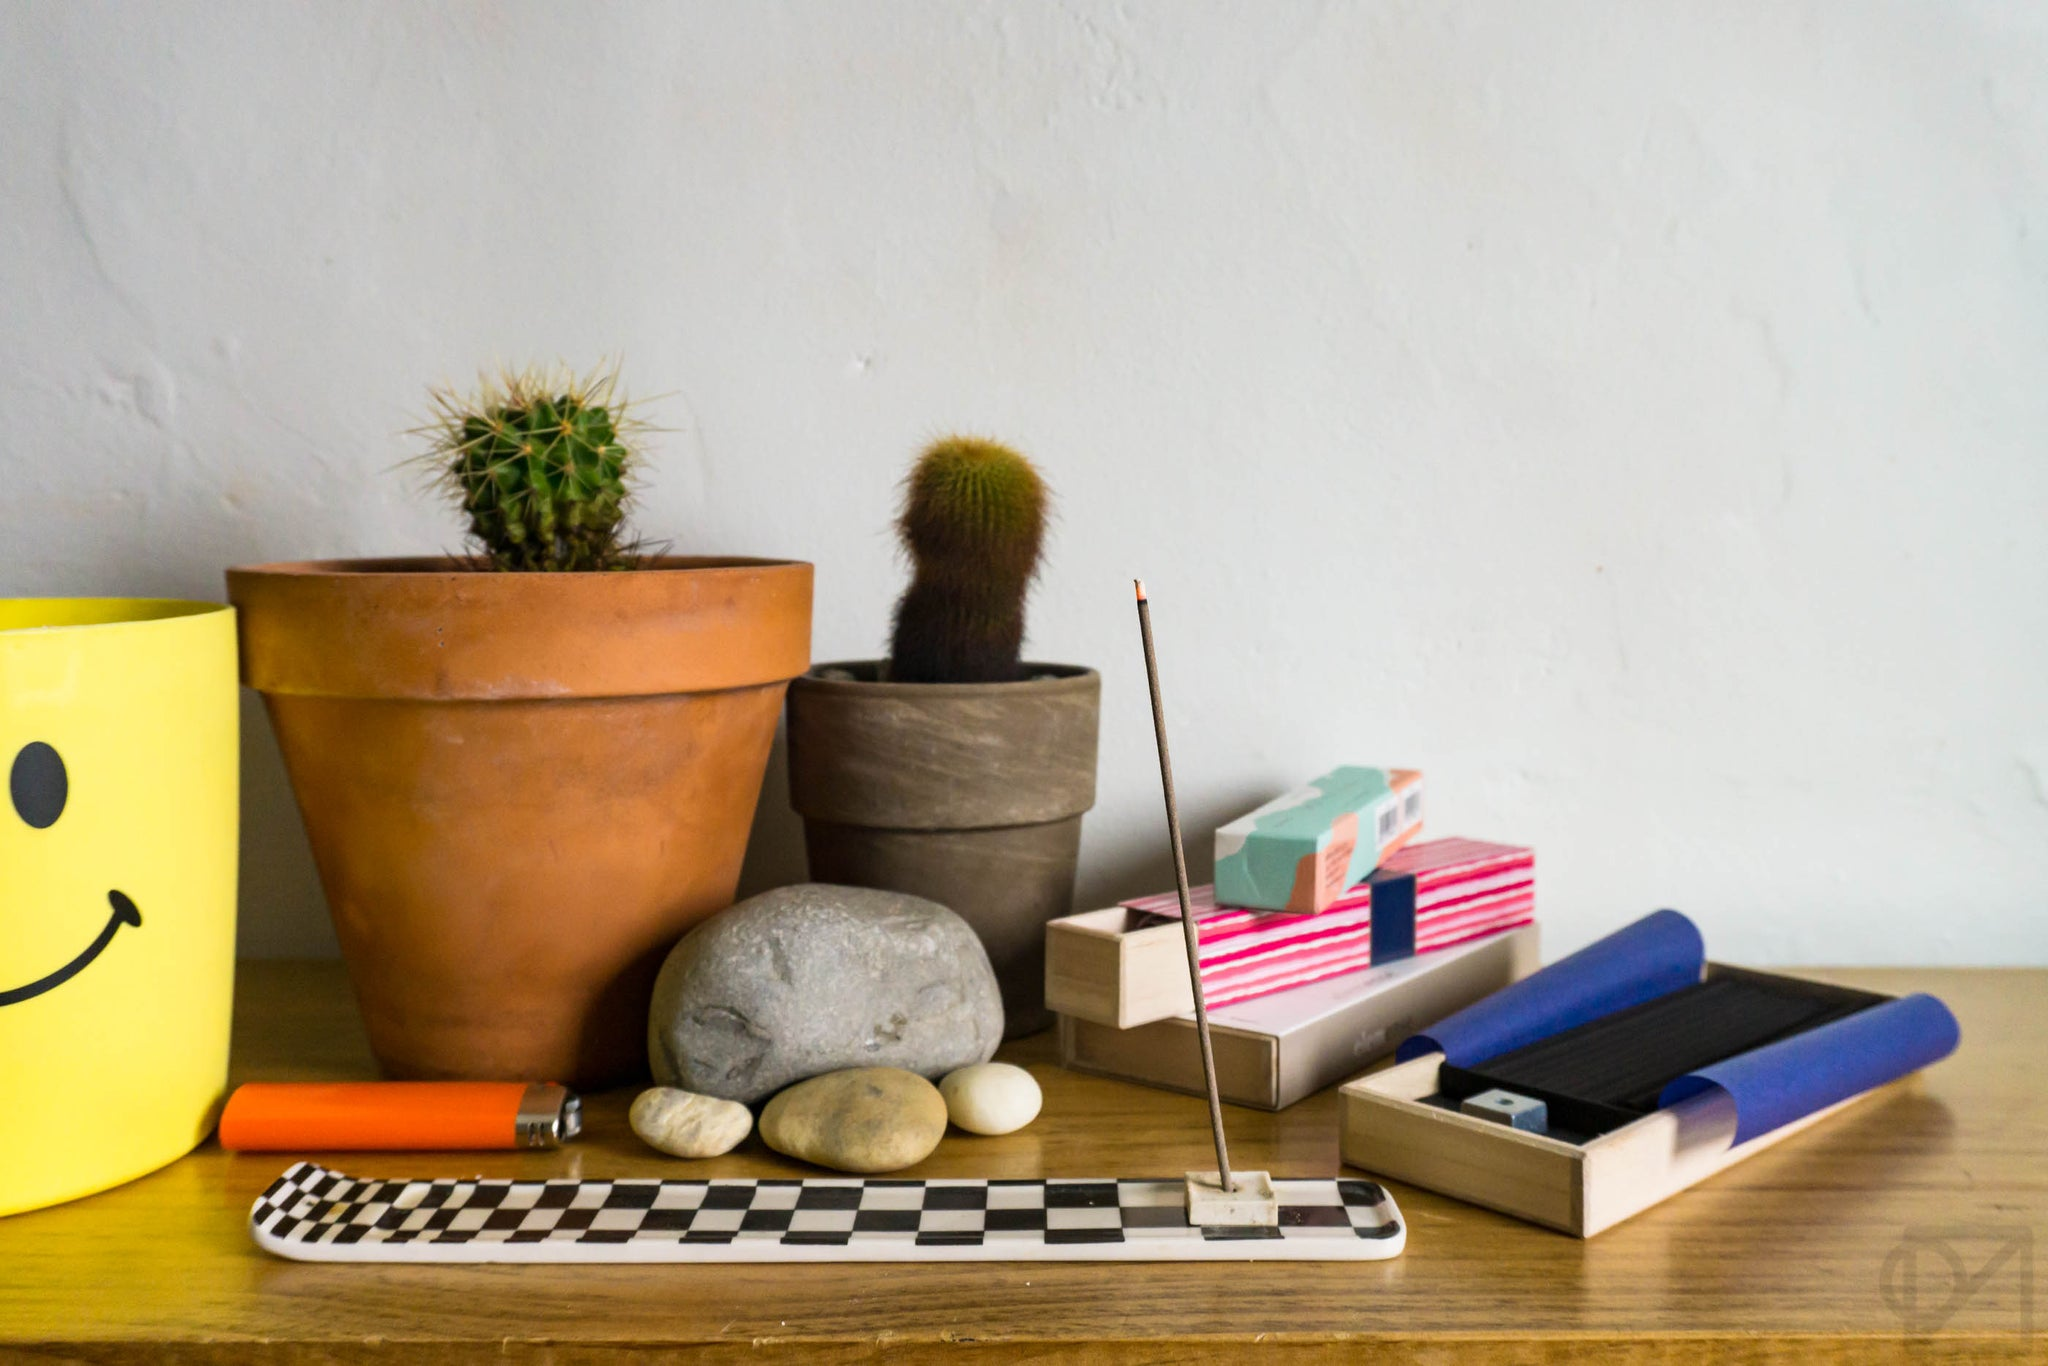 A wooden shelf with 2 small cactus, smooth river rocks, and a stack of different types of incense boxes. One stick is in a checkerboard burner, wafting incense.